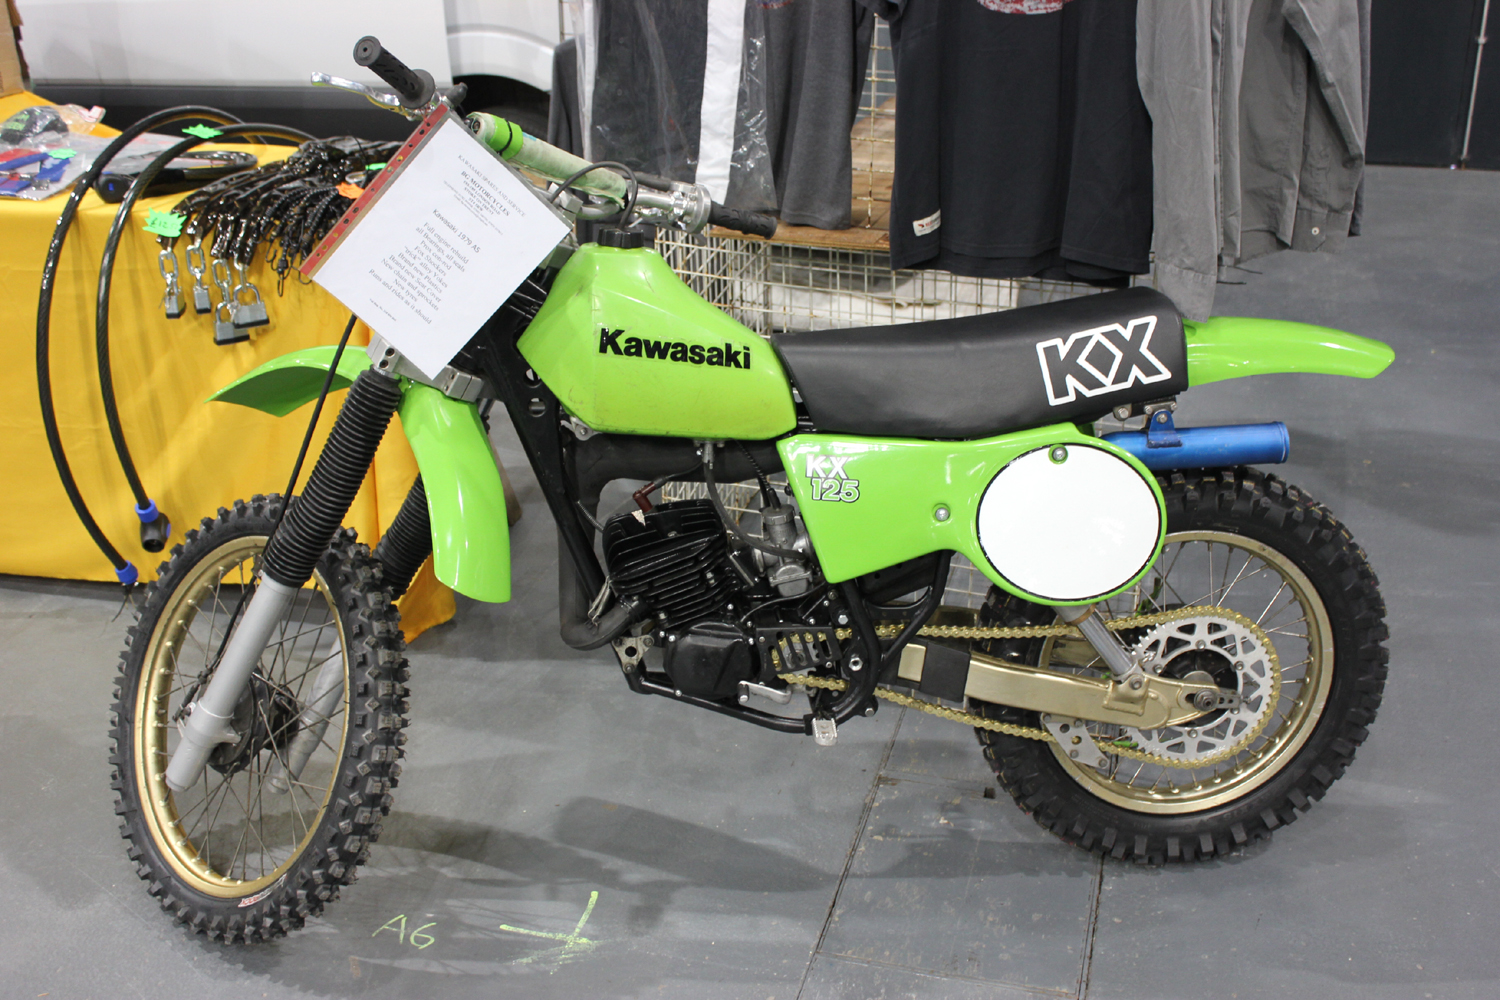 classicdirtbikerider.com-photo by Mr J-2015 Telford classic dirt bike show-1979 KAWASAKI KX125 A5